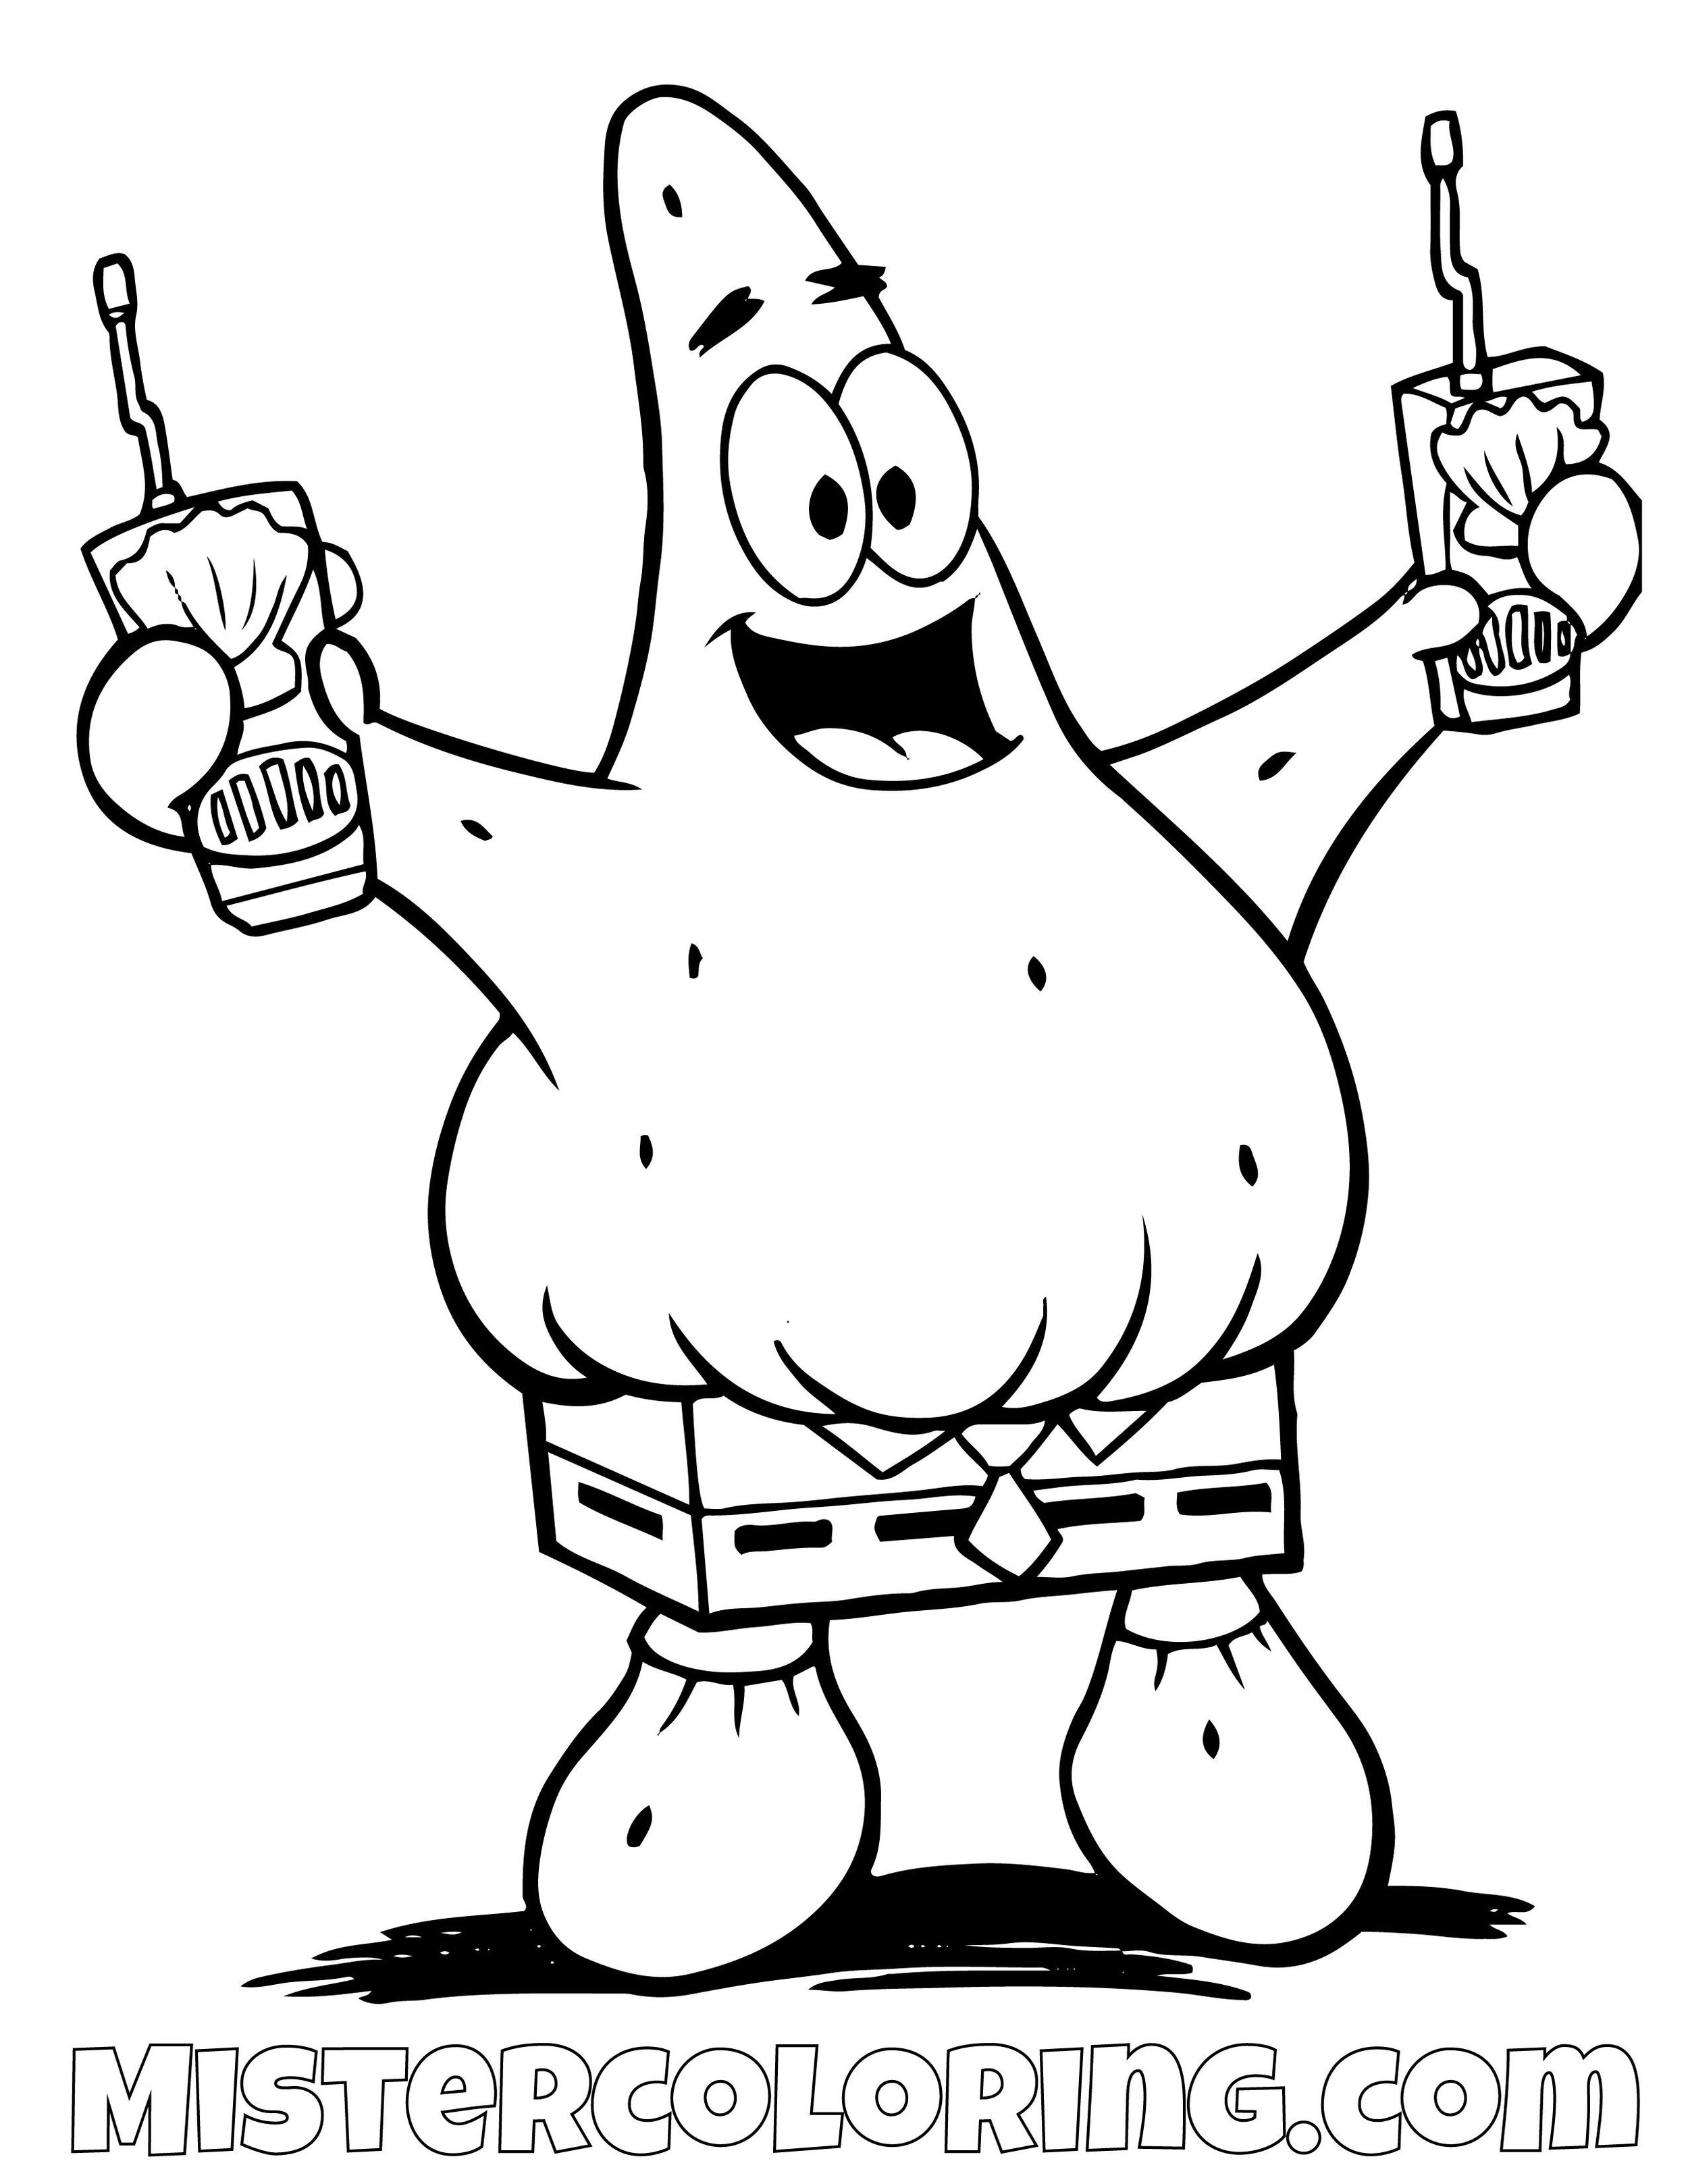 Patrick Star Coloring Page - Free & Printable Coloring Pages For ... | 1294x1000